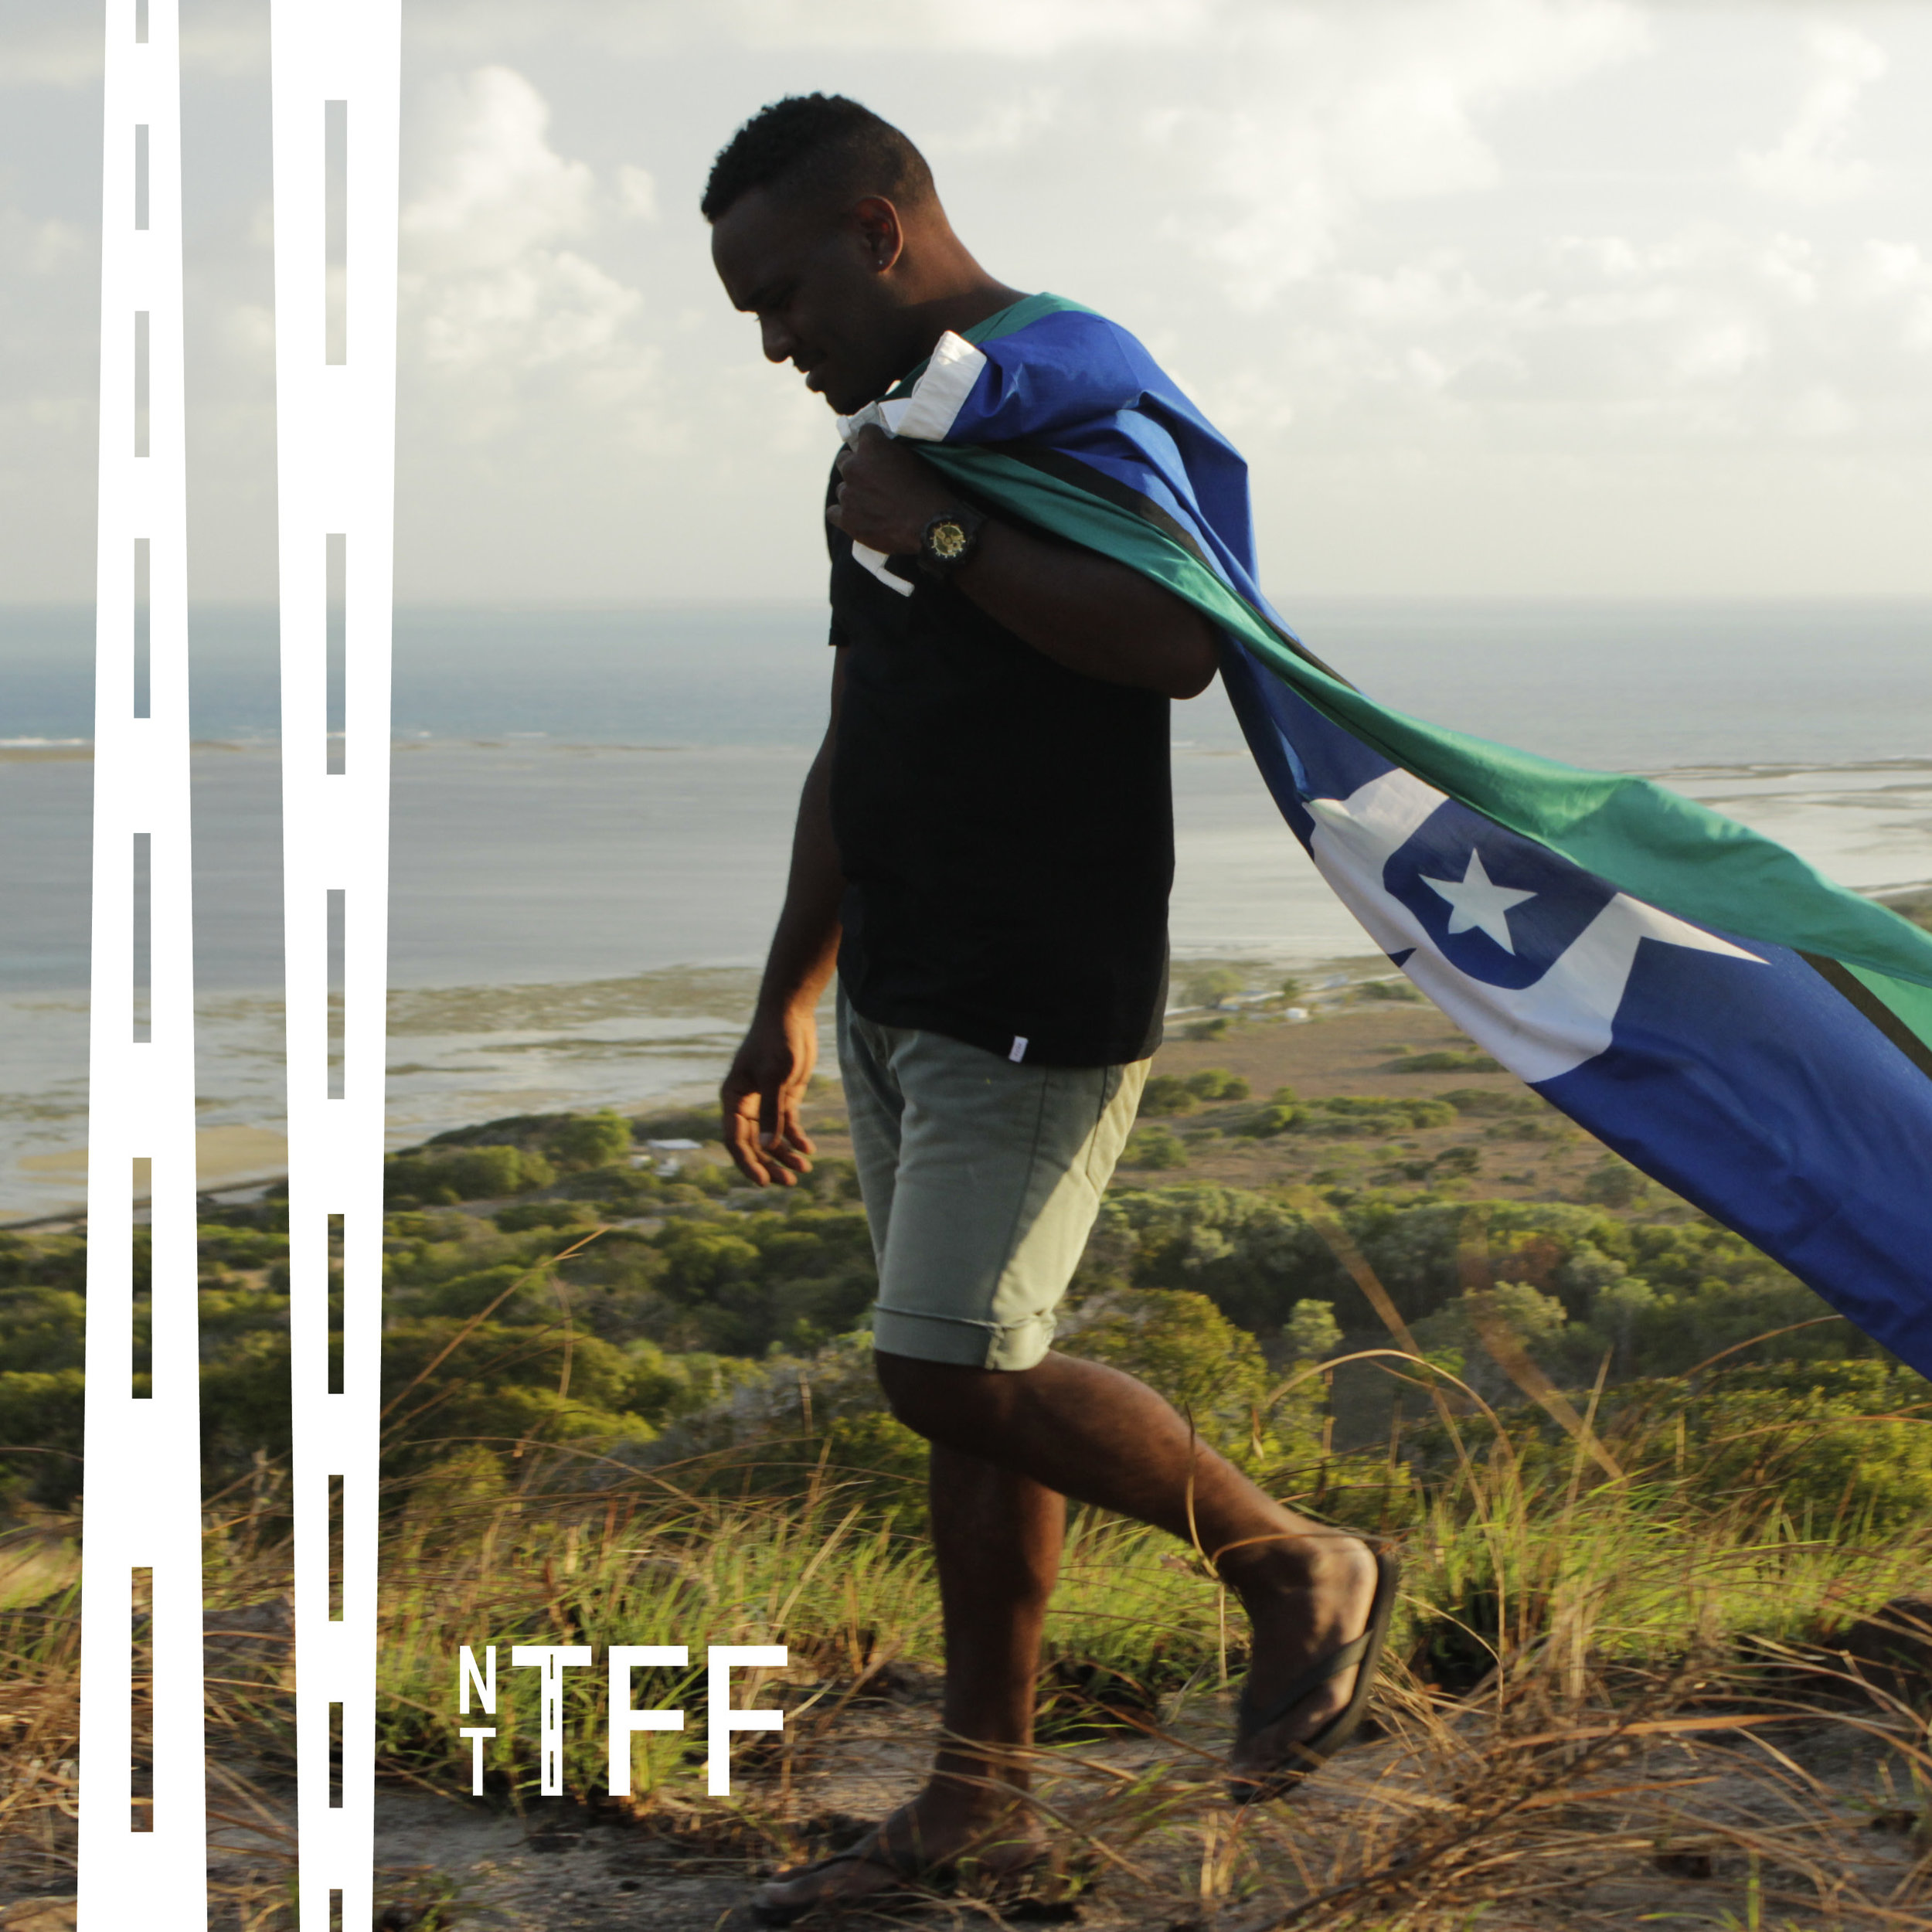 Carry the Flag - Danielle Maclean. Thursday Island/Darwin. 28 mins.2017 marked the 25th anniversary of the Torres Strait Flag. For Bernard Namok Jnr, Bala B, the flag is a poignant reminder of home, family and the father he hardly knew.Bernard Namok Senior won the flag design competition in 1992 but died a year later at just 31, leaving behind his wife with four young children. Journey across the Torres Straits with Bala B to honour his fathers legacy. A rich and powerful story of a man whose design created meaning for a people once invisible to mainland Australia, the people of the Torres Strait.